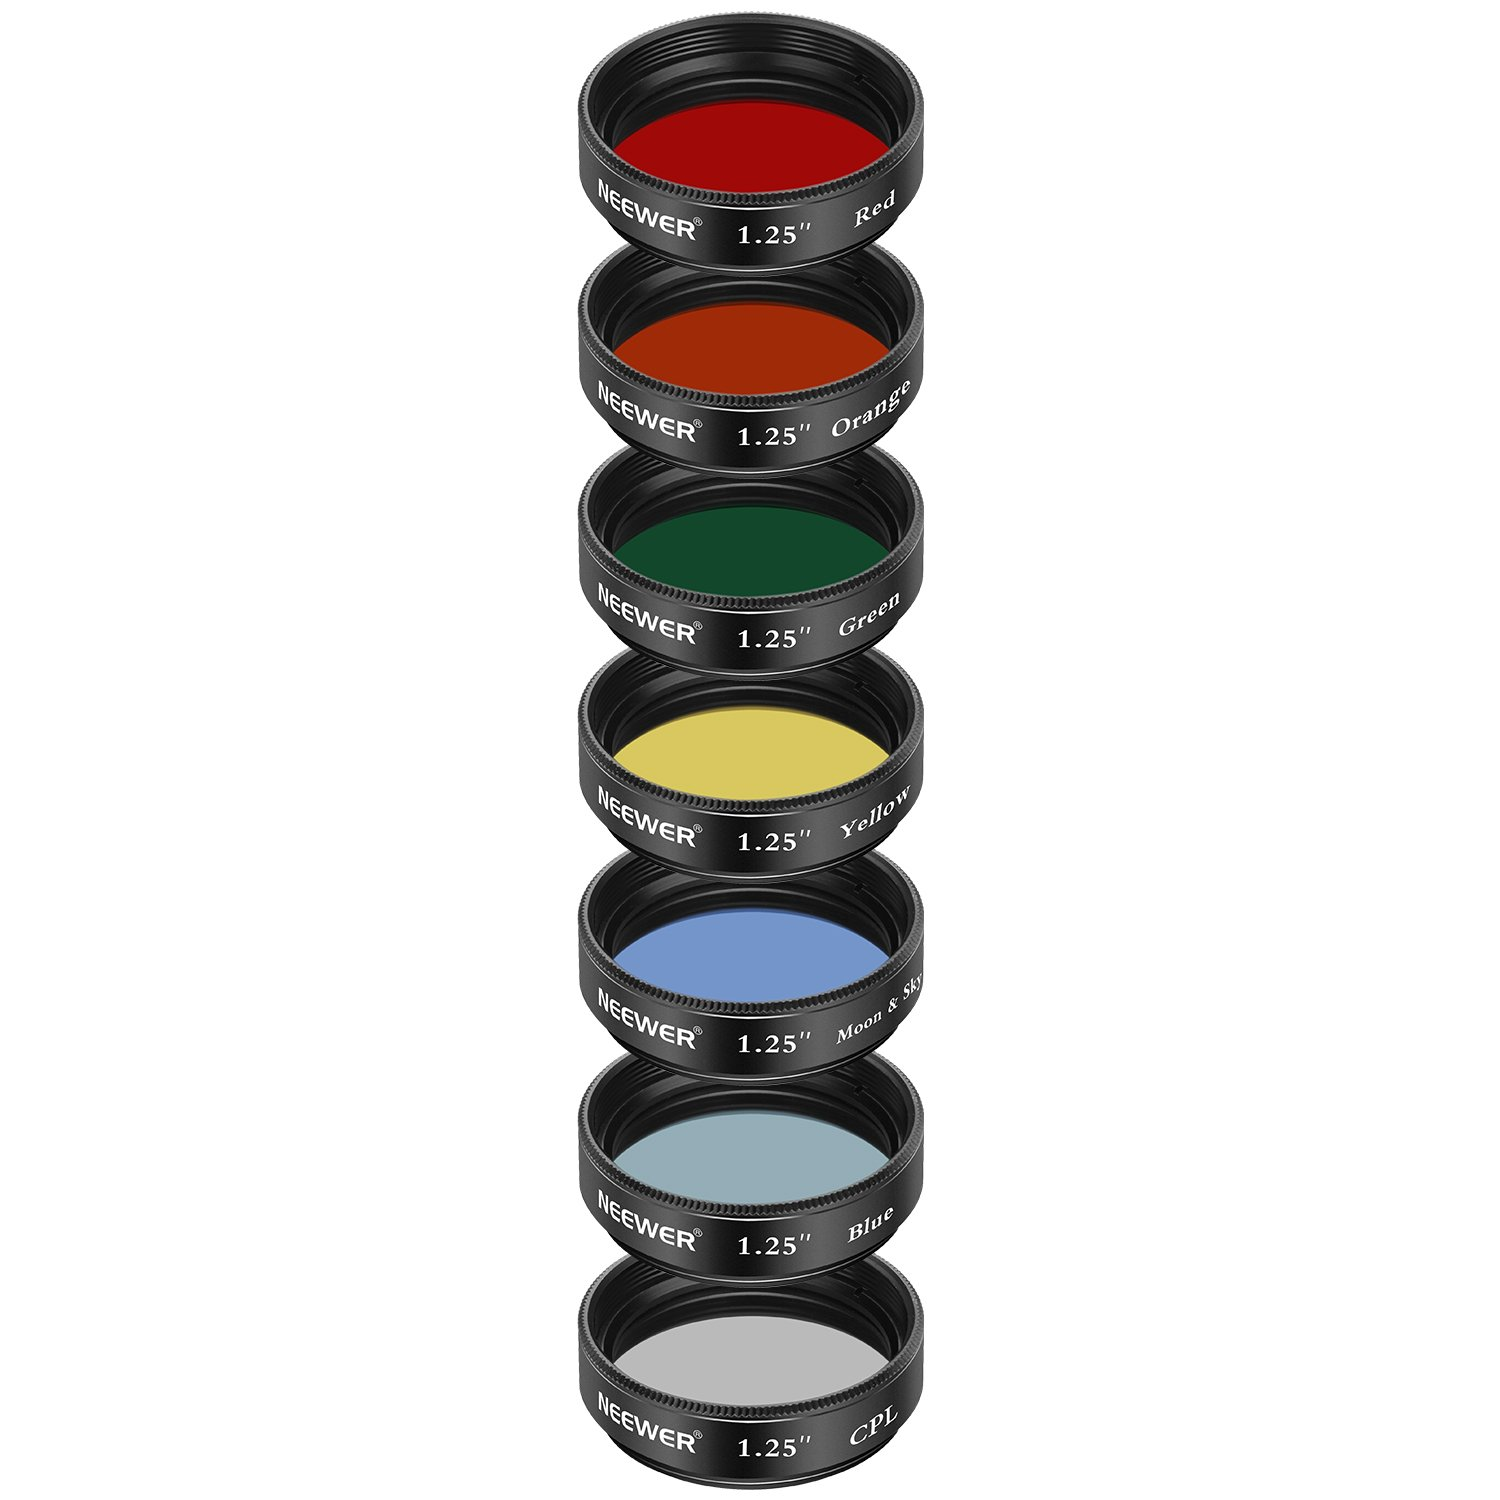 5 Color Filters Set Red, Orange, Yellow, Green, Blue CPL Filter Neewer 1.25 inches Telescope Moon Filter Eyepieces Filters for Enhancing Definition and Resolution in Lunar Planetary Observation